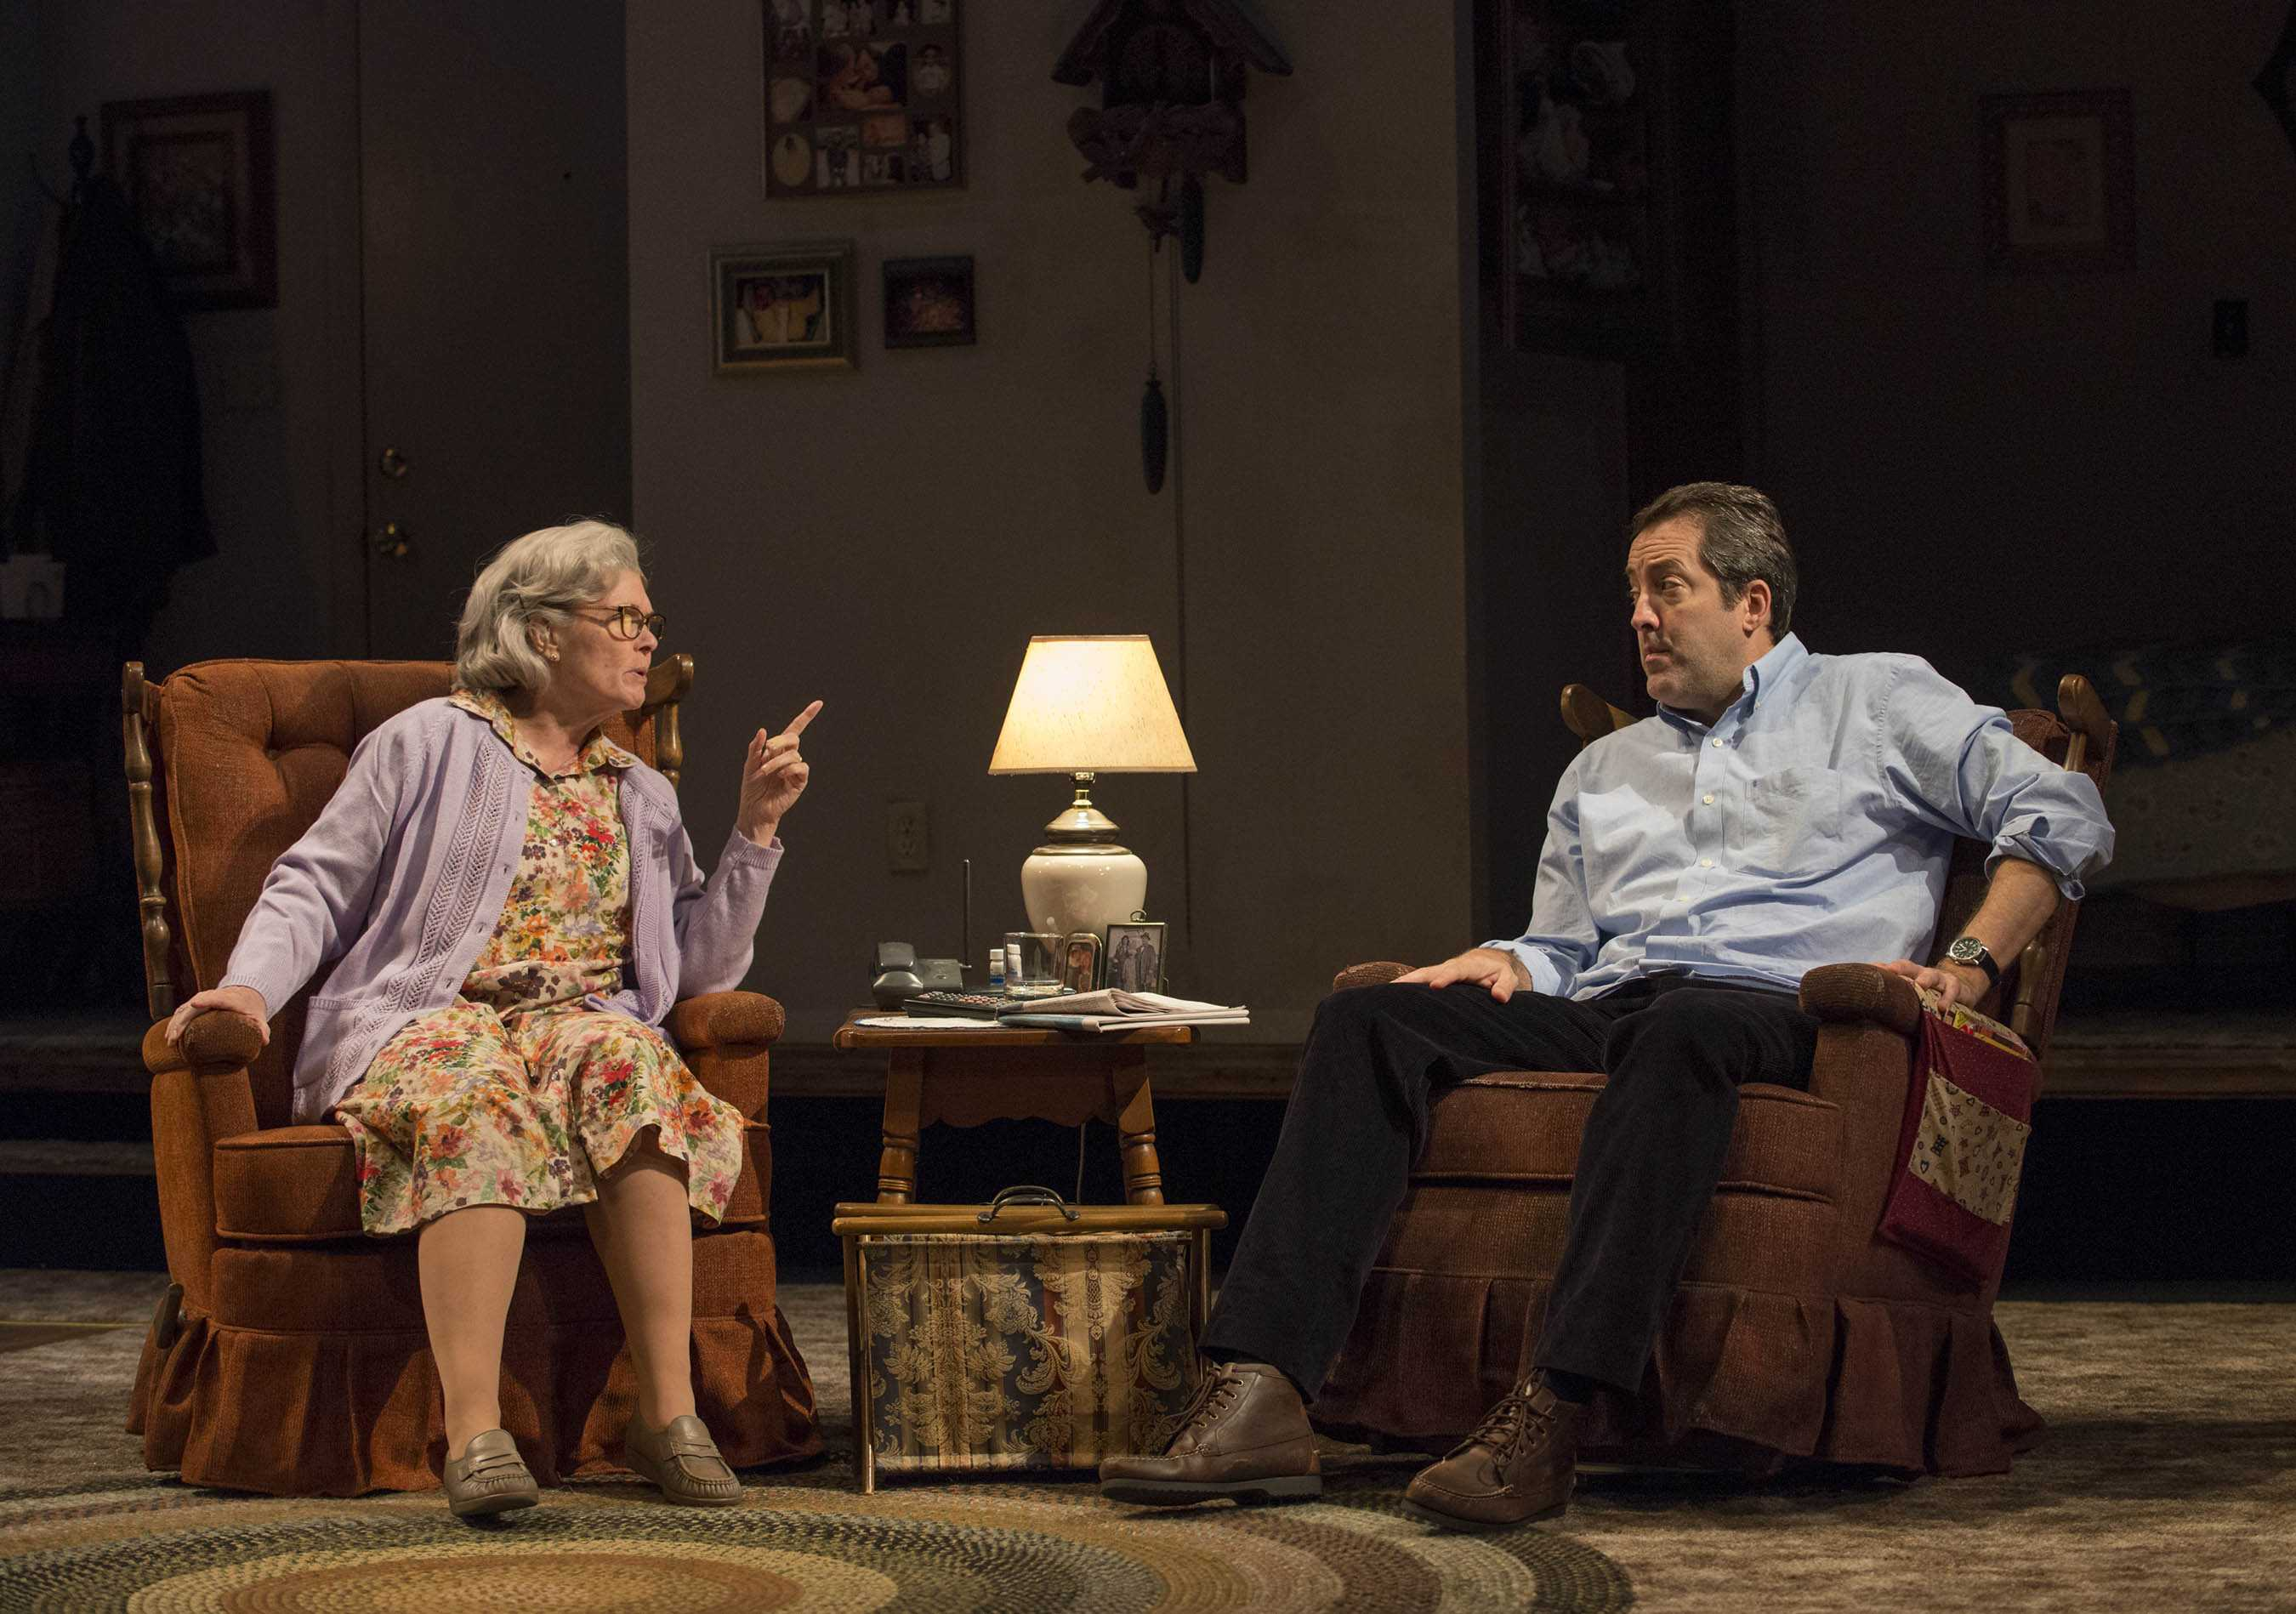 Pictured (left to right) Debra Monk (Edna) and ensemble member Ian Barford (Edna's son Andrew). Photo by Michael Brosilow.